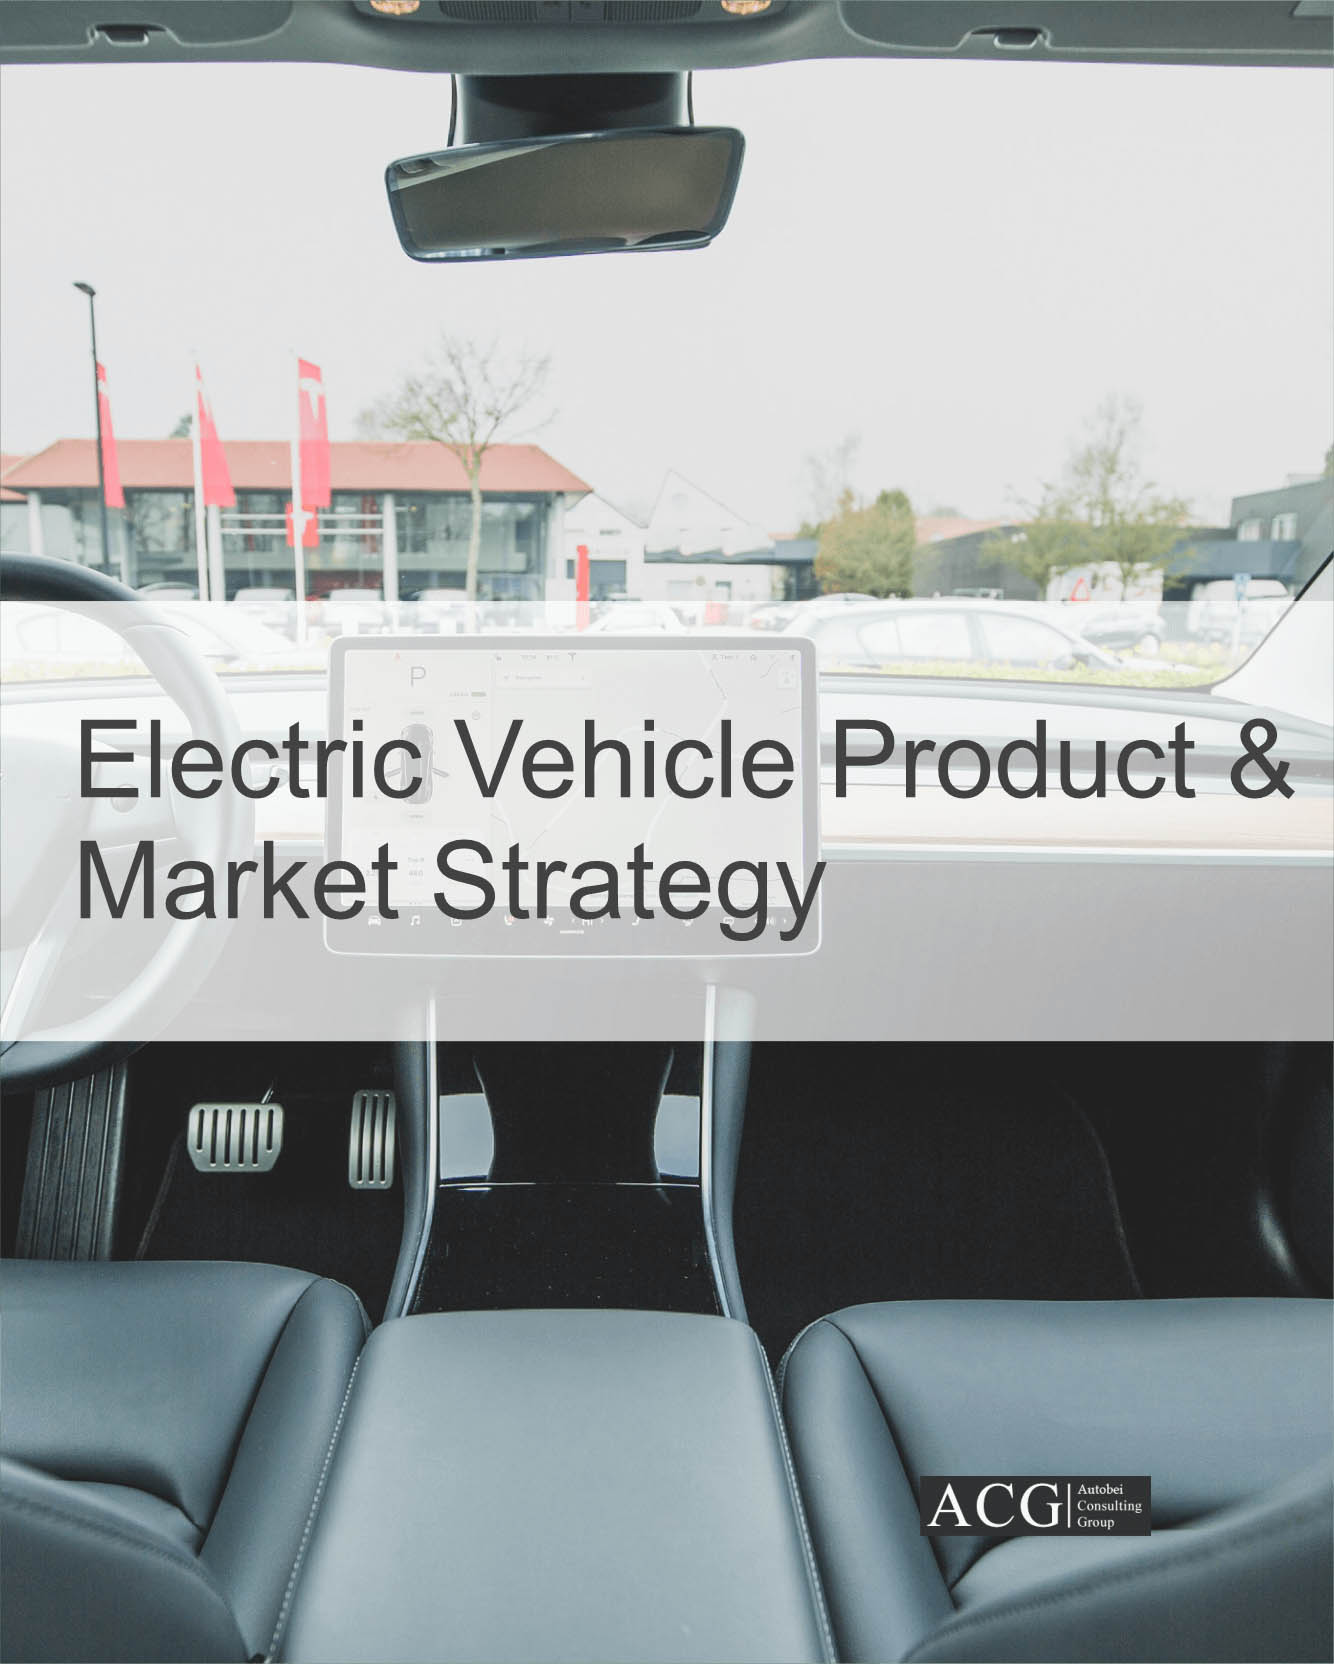 Electric Vehicle Strategy Analysis